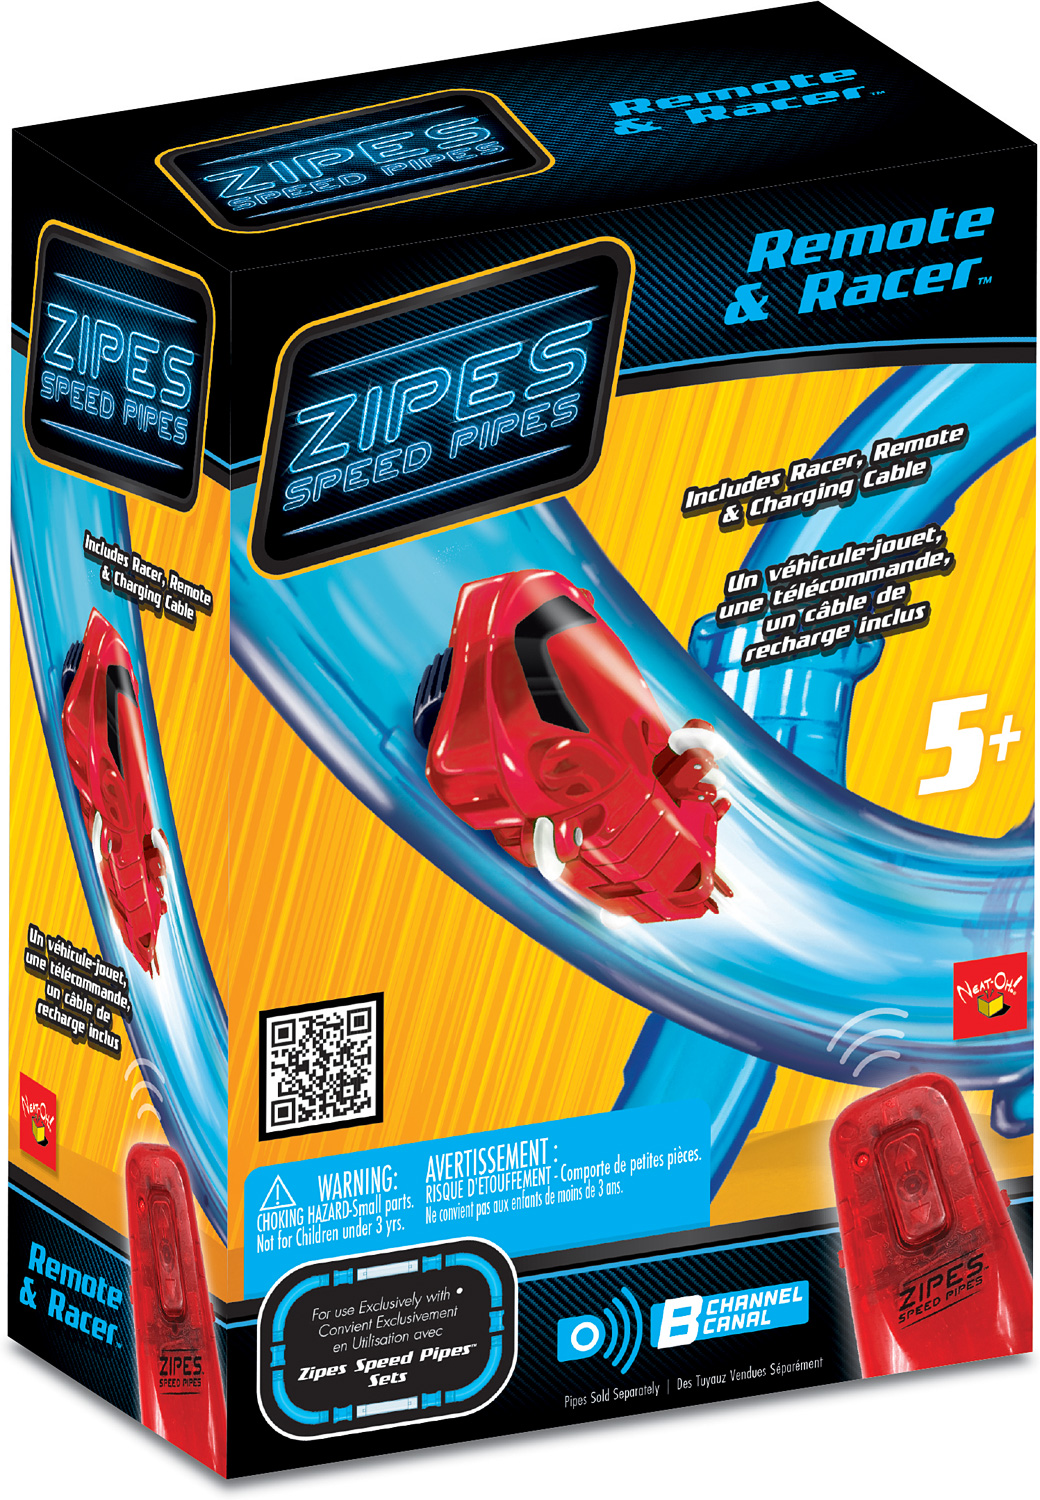 Zipes® Speed Pipes - Racer & Remote